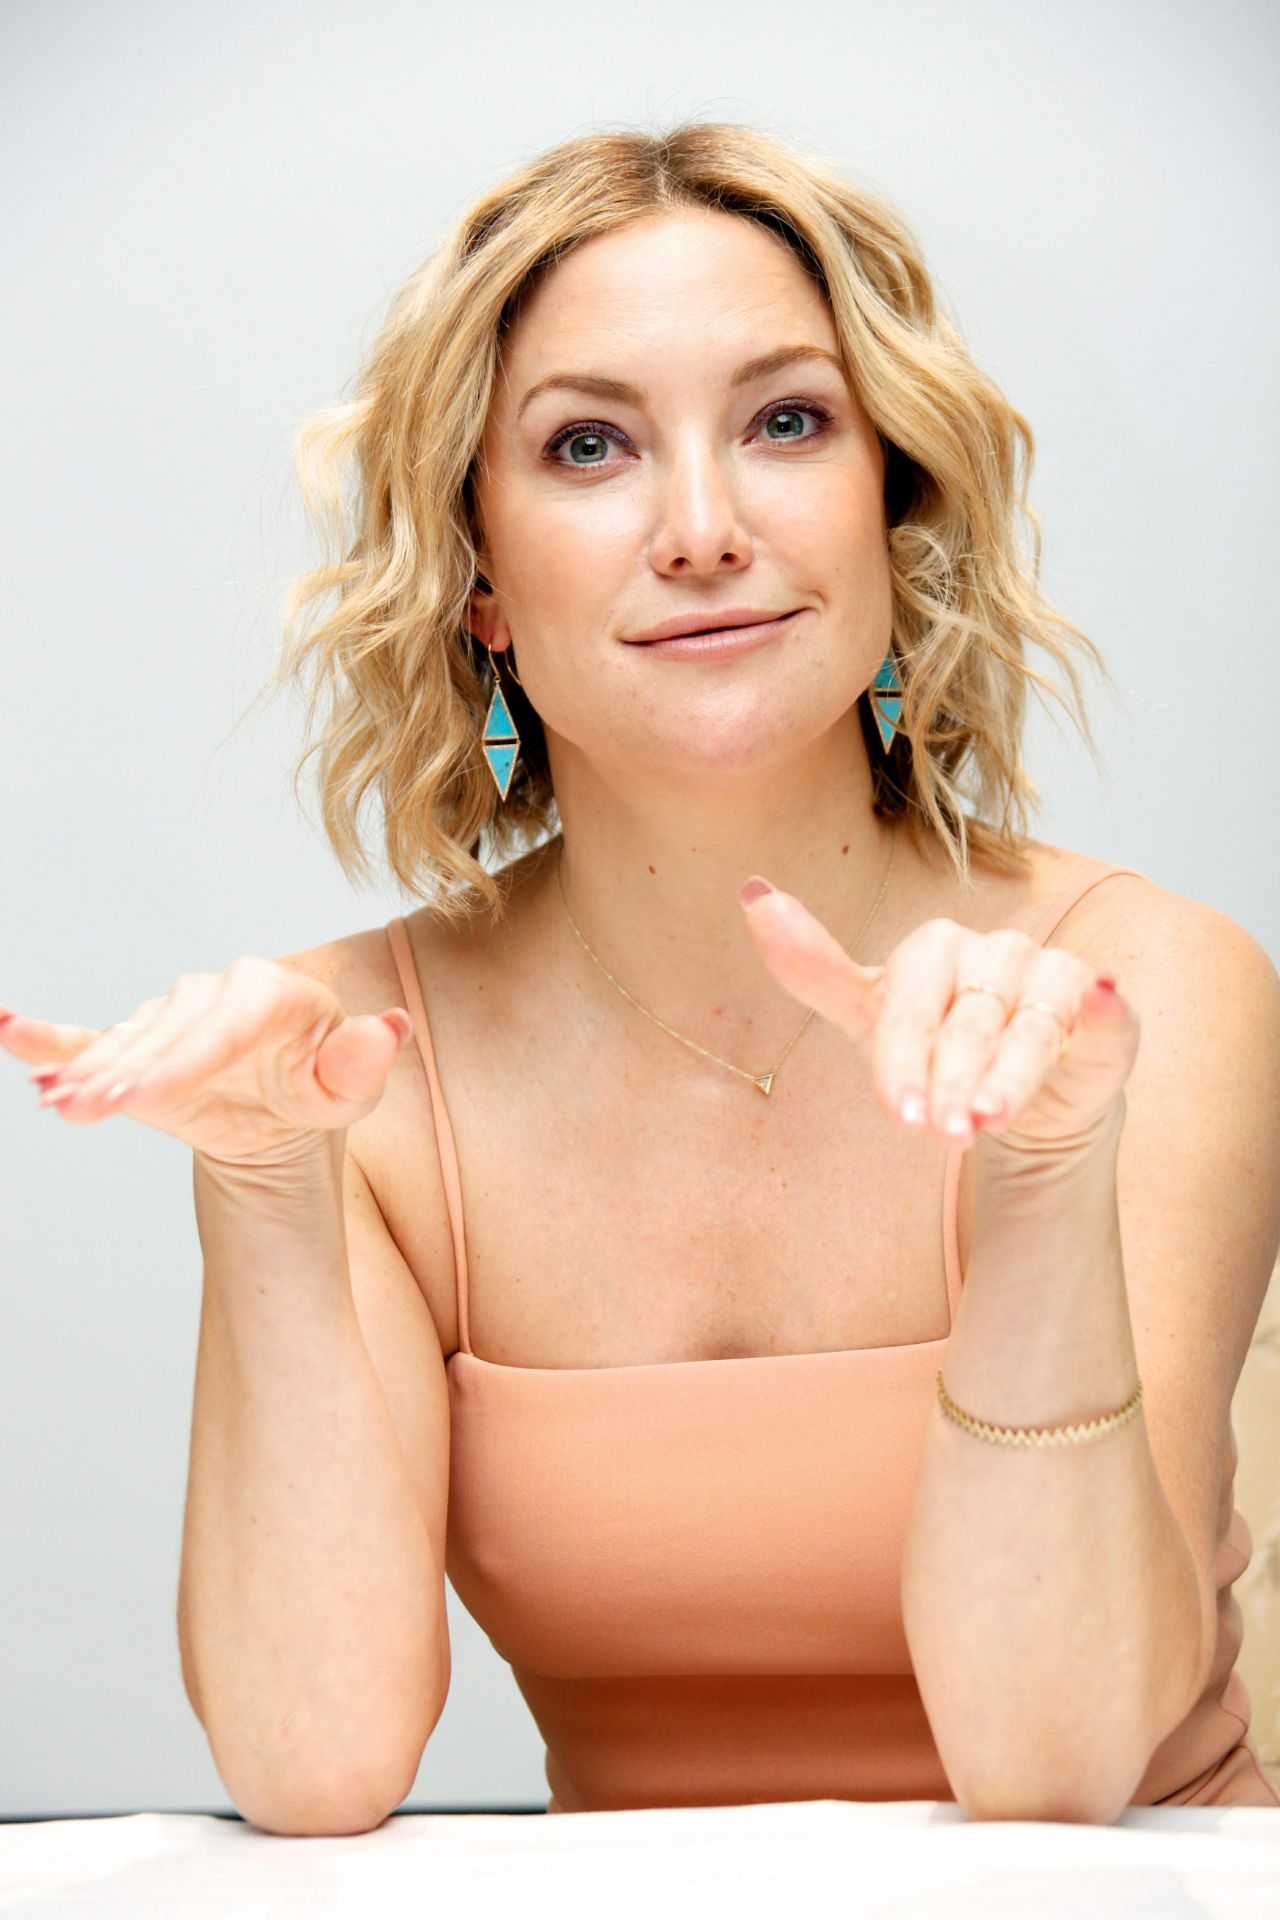 kate hudson husbandkate hudson movies, kate hudson 2016, kate hudson films, kate hudson instagram, kate hudson vk, kate hudson фильмы, kate hudson 2017, kate hudson & ginnifer goodwin, kate hudson young, kate hudson husband, kate hudson filmi, kate hudson mother, kate hudson age, kate hudson wiki, kate hudson фото, kate hudson site, kate hudson wikipedia, kate hudson pretty happy, kate hudson fan site, kate hudson pitt